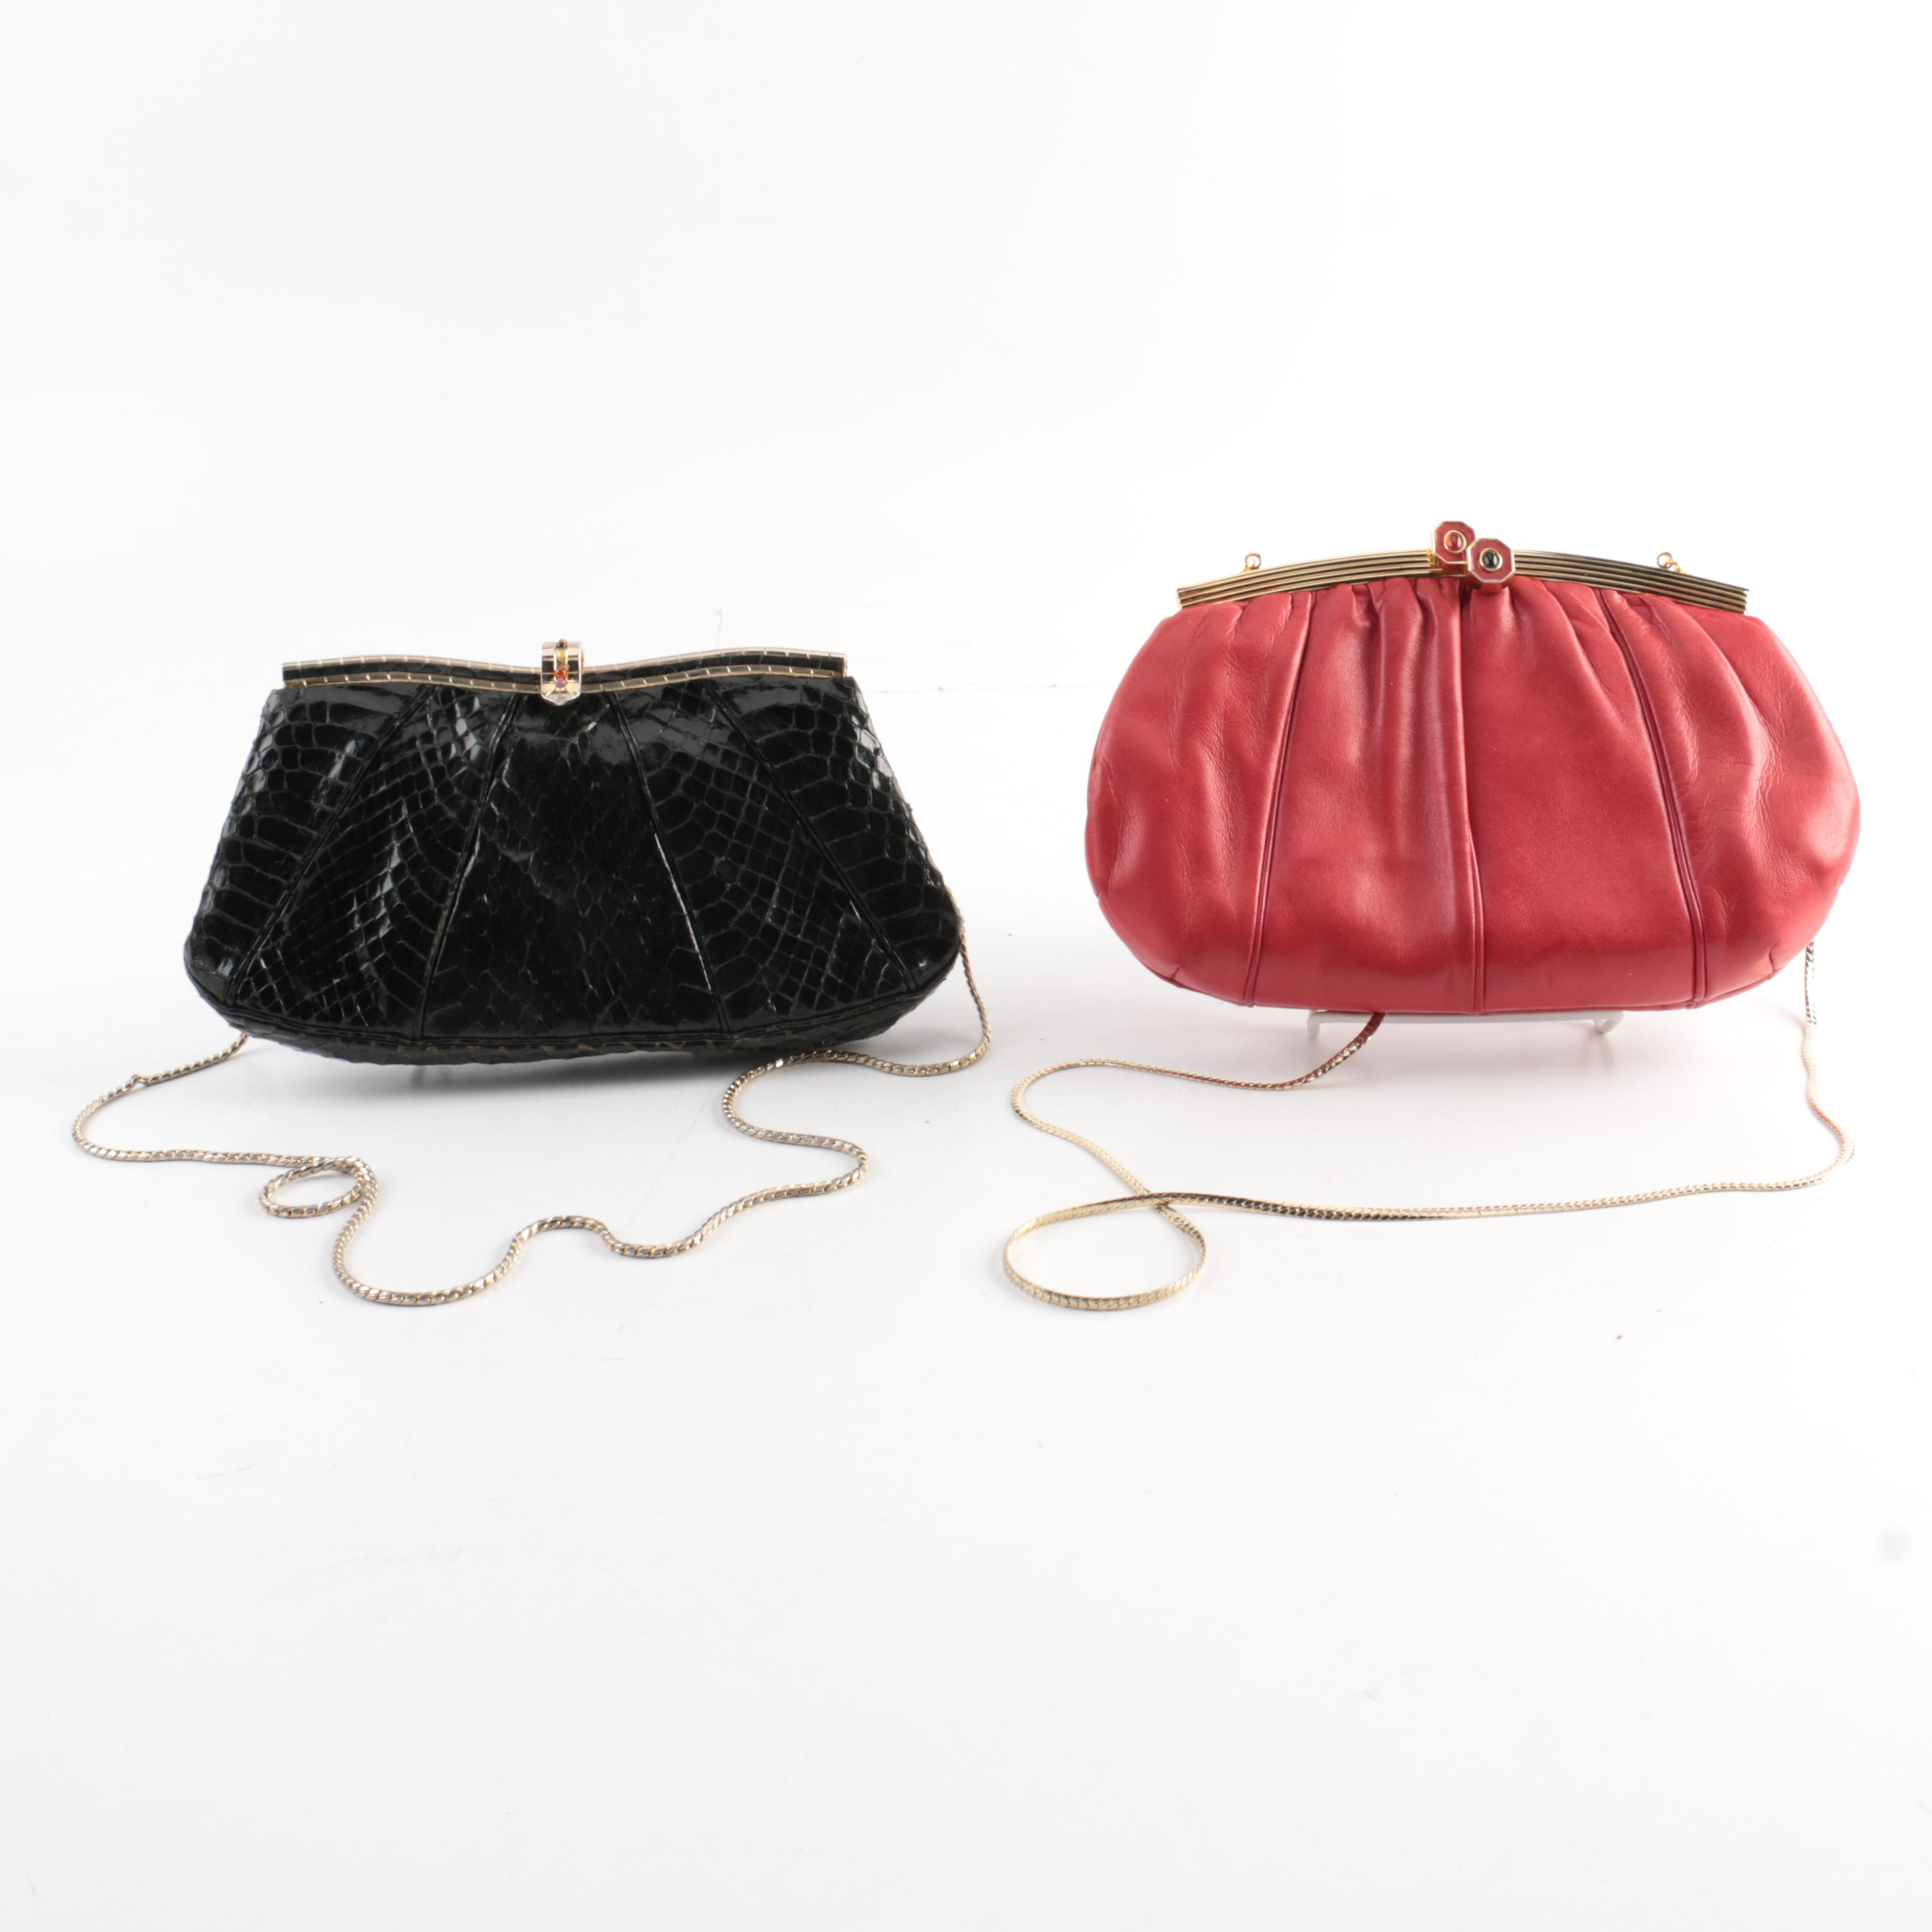 Judith Leiber Leather Clutches Including Snakeskin